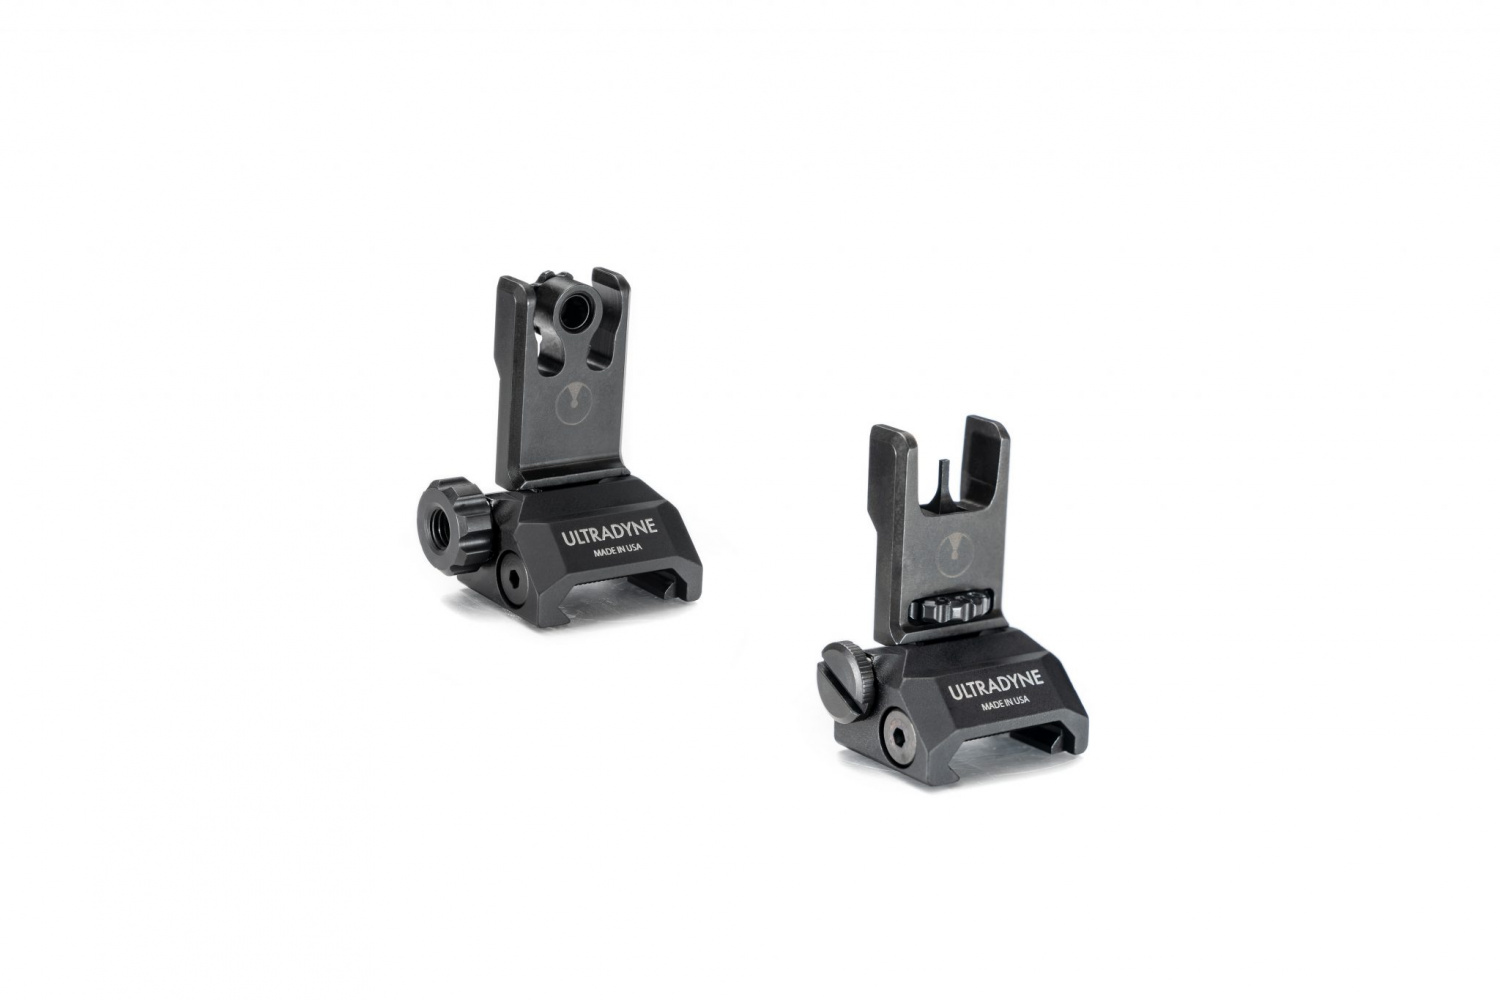 Ultradyne C2 iron sight